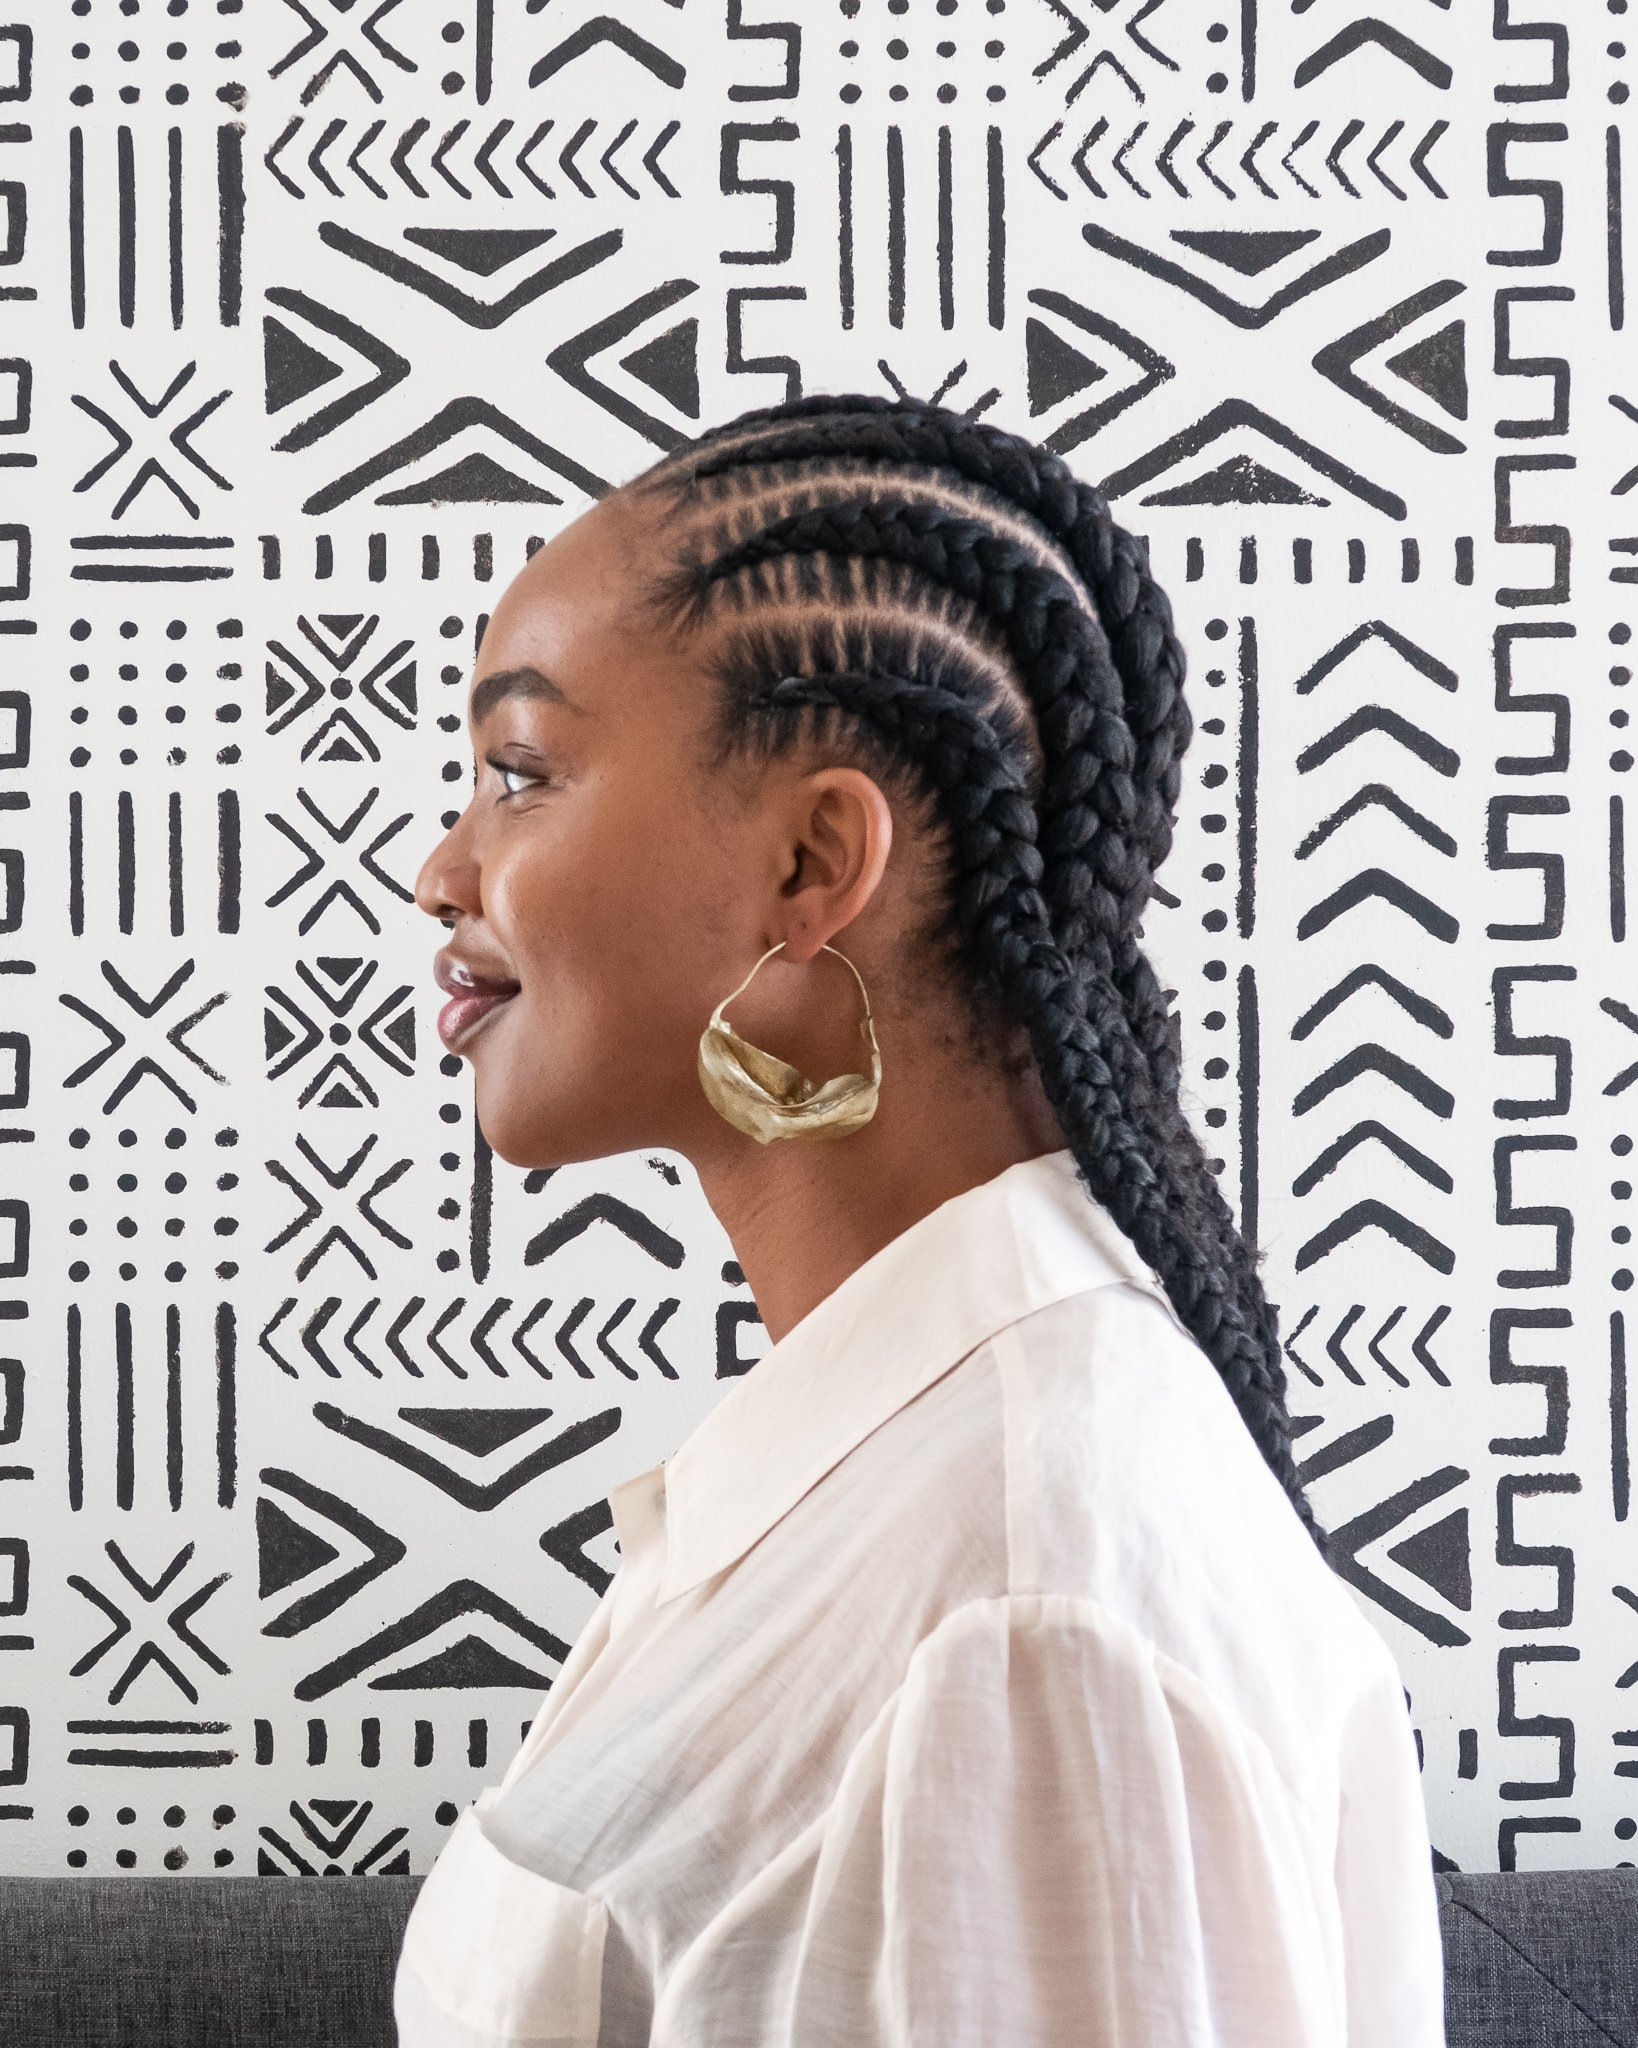 IJeoma. kola.Stitch Cornrows - protective styles for black woment